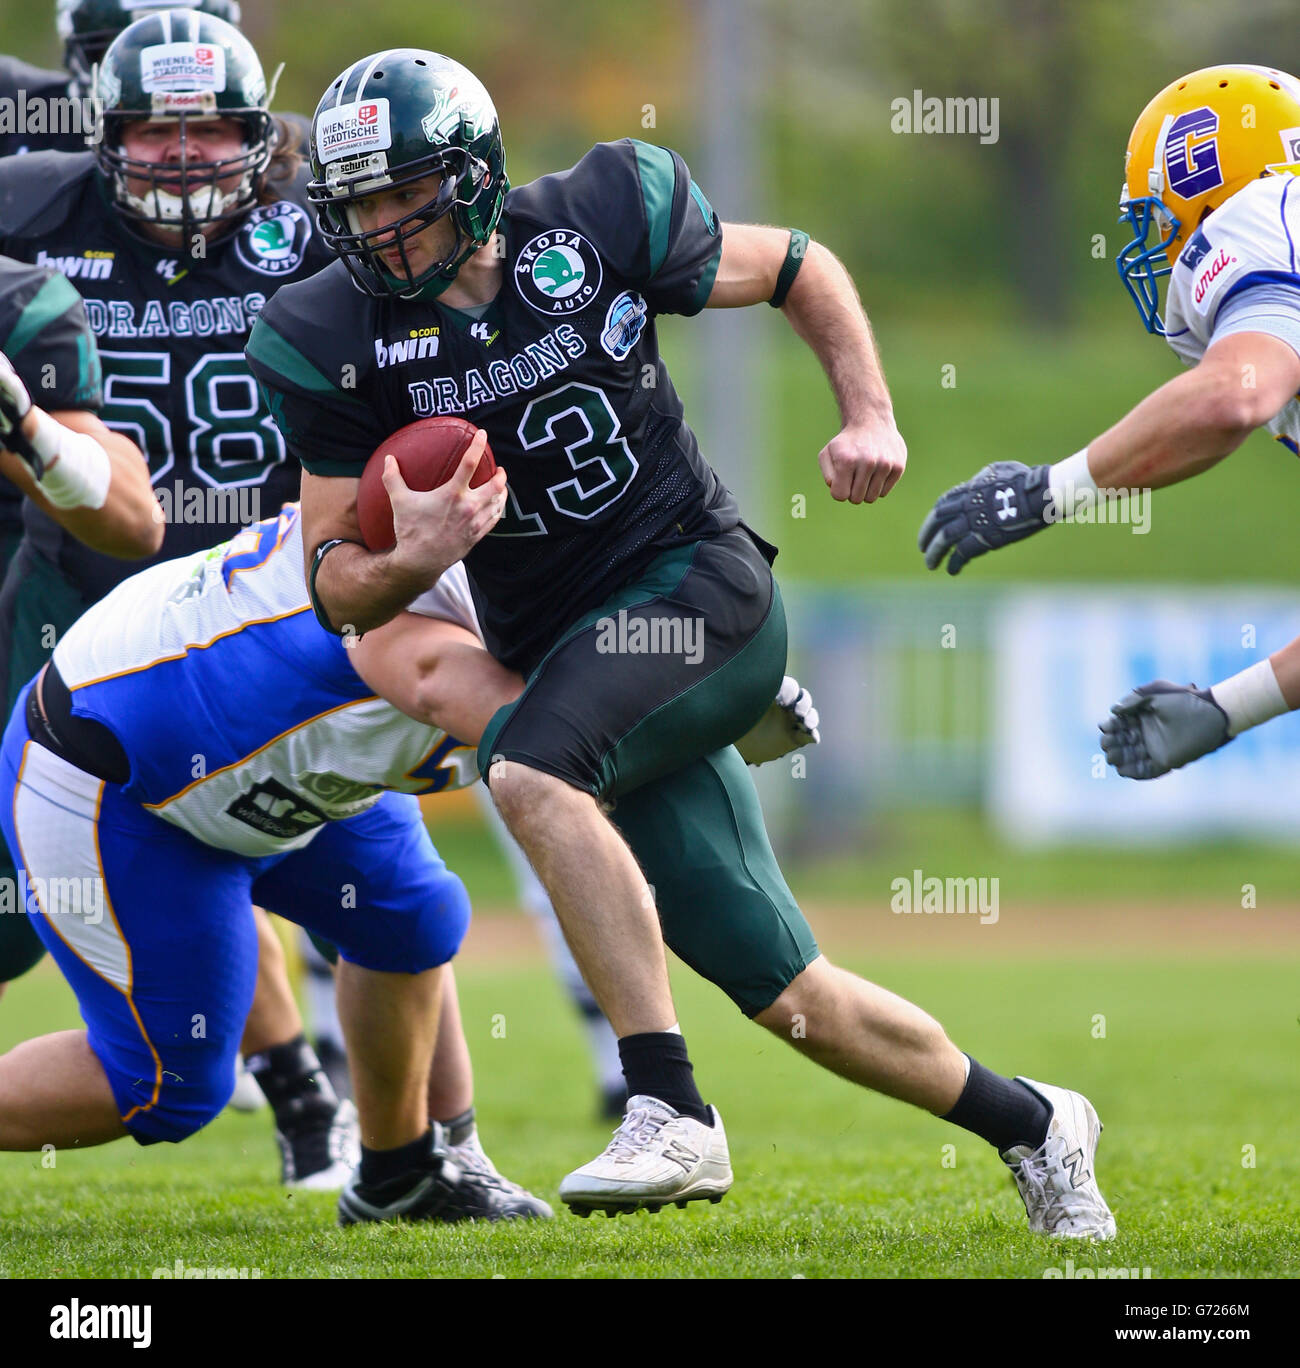 American Football, QB Thomas Haider, No. 13 of the Dragons, running with the ball; the Graz Giants win the game - Stock Image